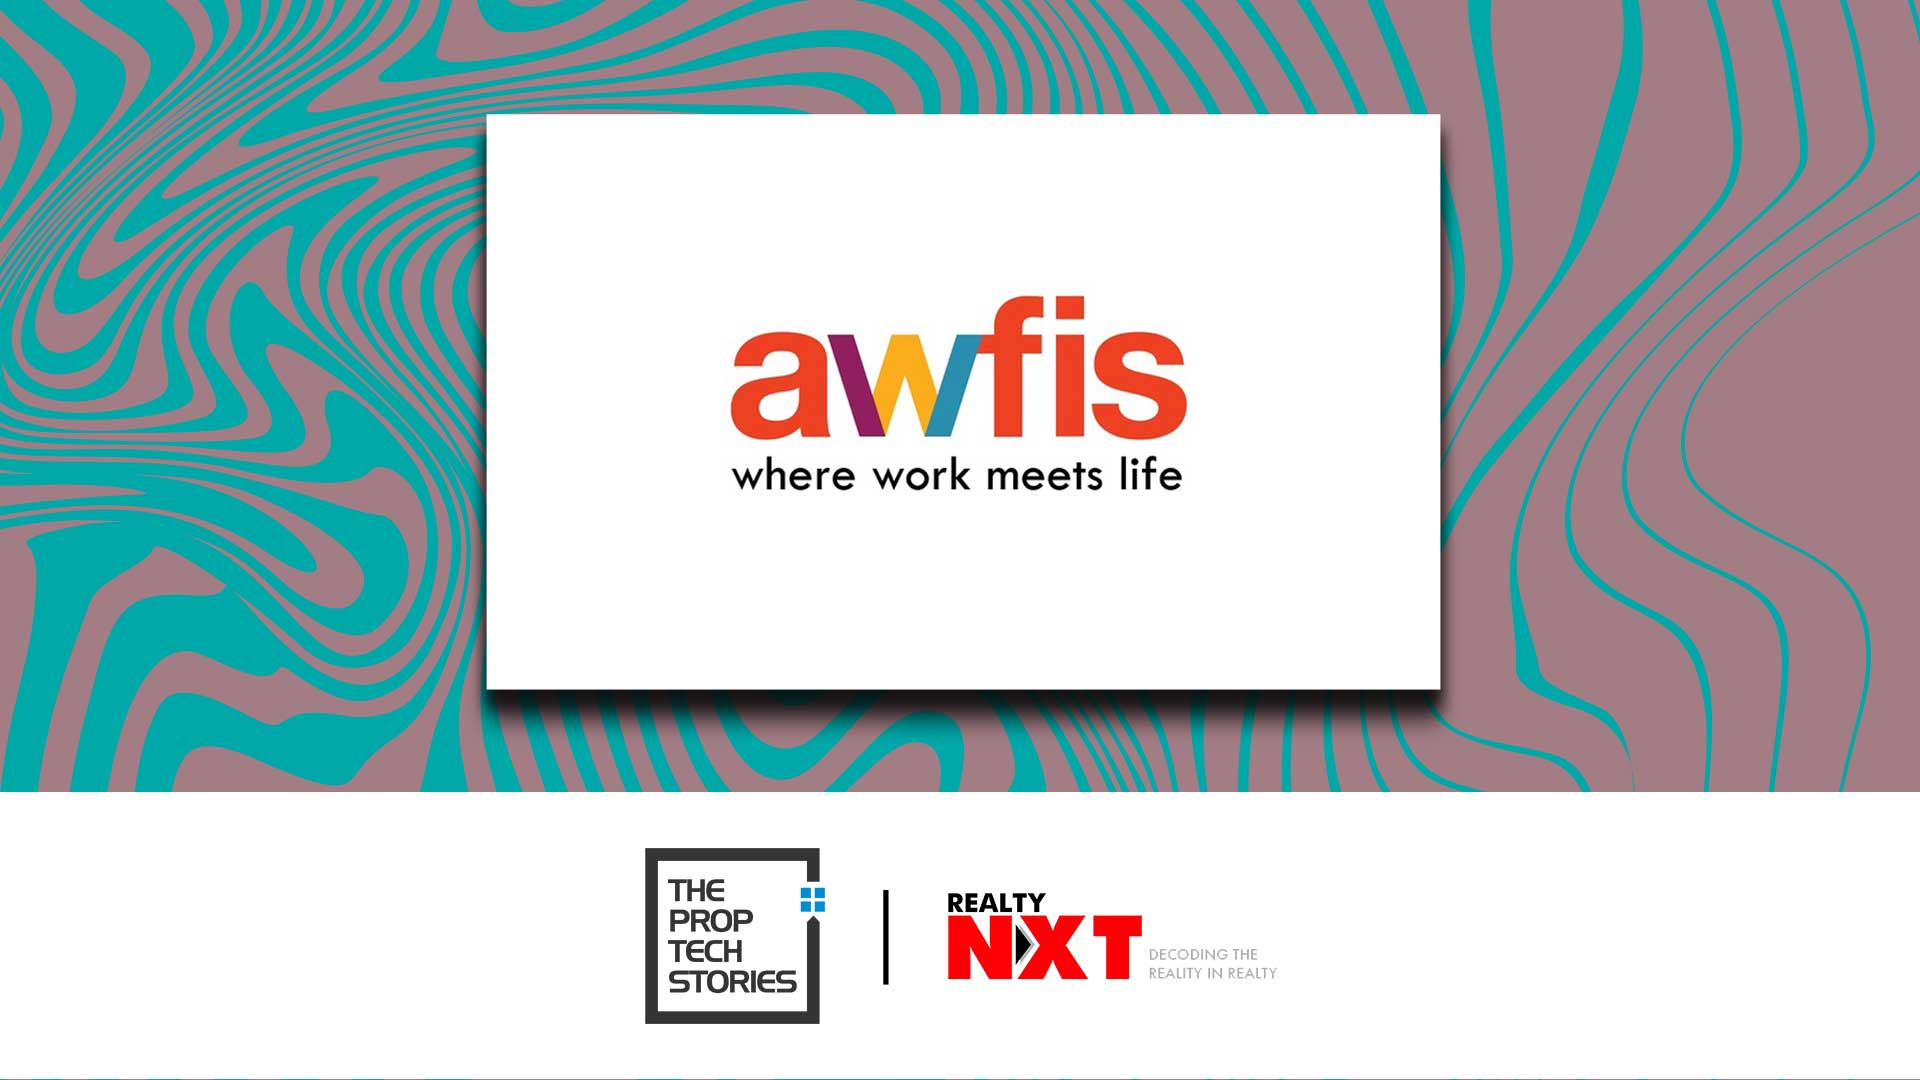 The PropTech Stories: Awfis Sets An Example